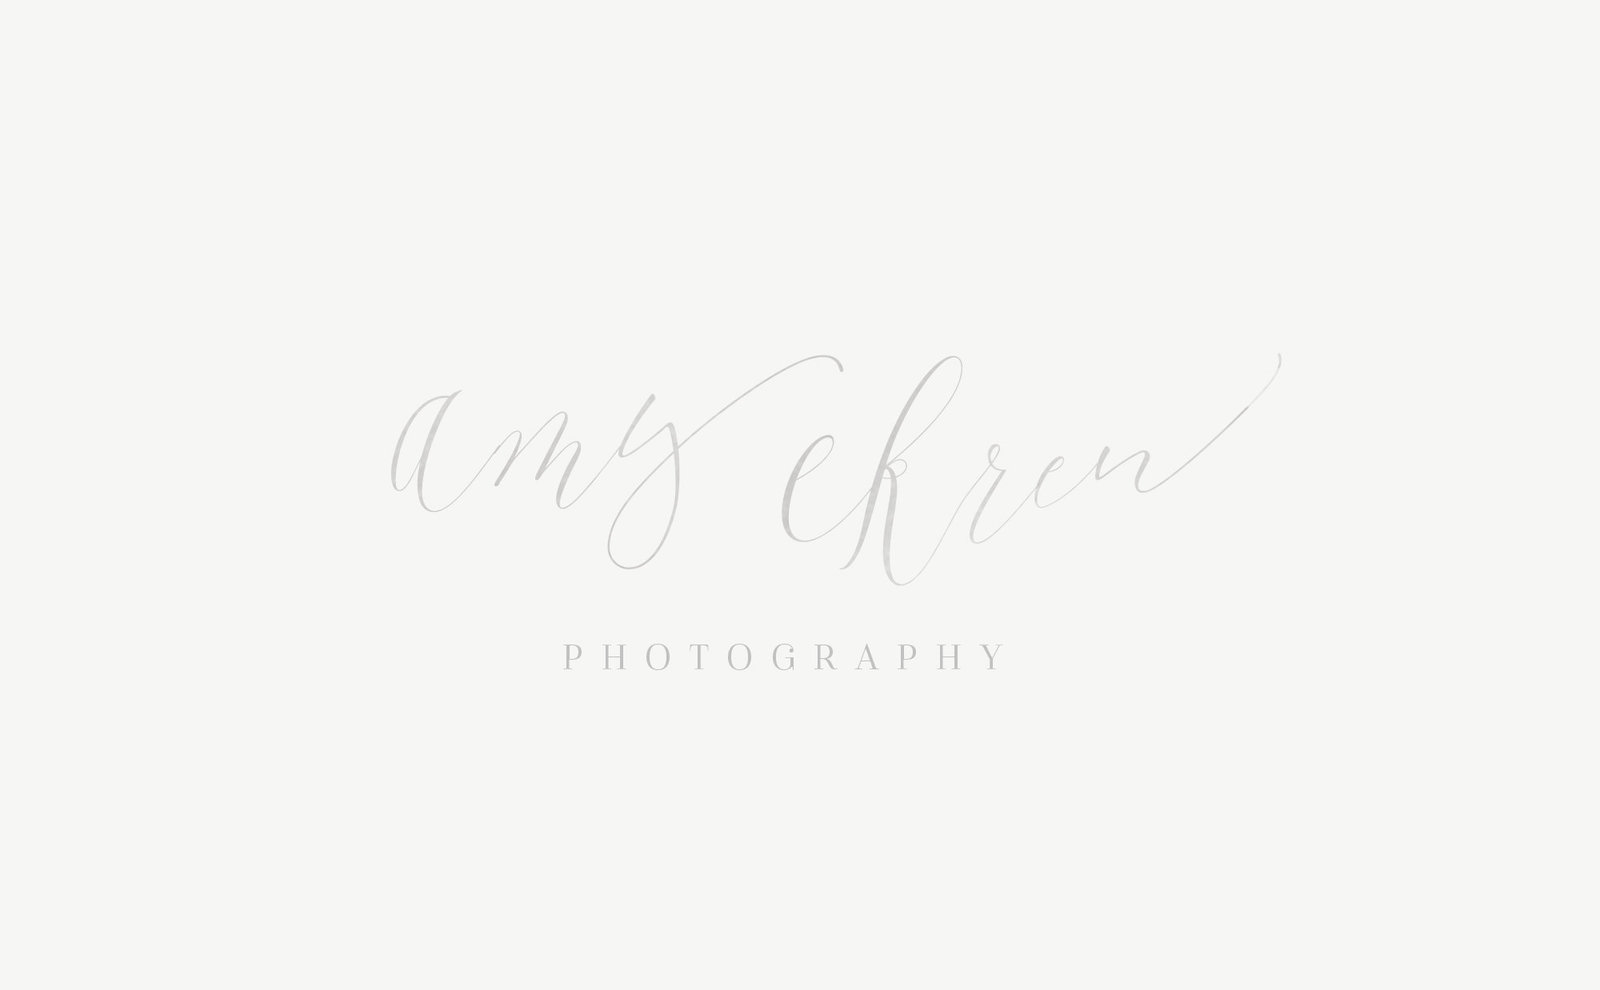 branding-for-photographers-custom-showit-site-logo-design-web-design-ribbon-and-ink-amy-ekren-01